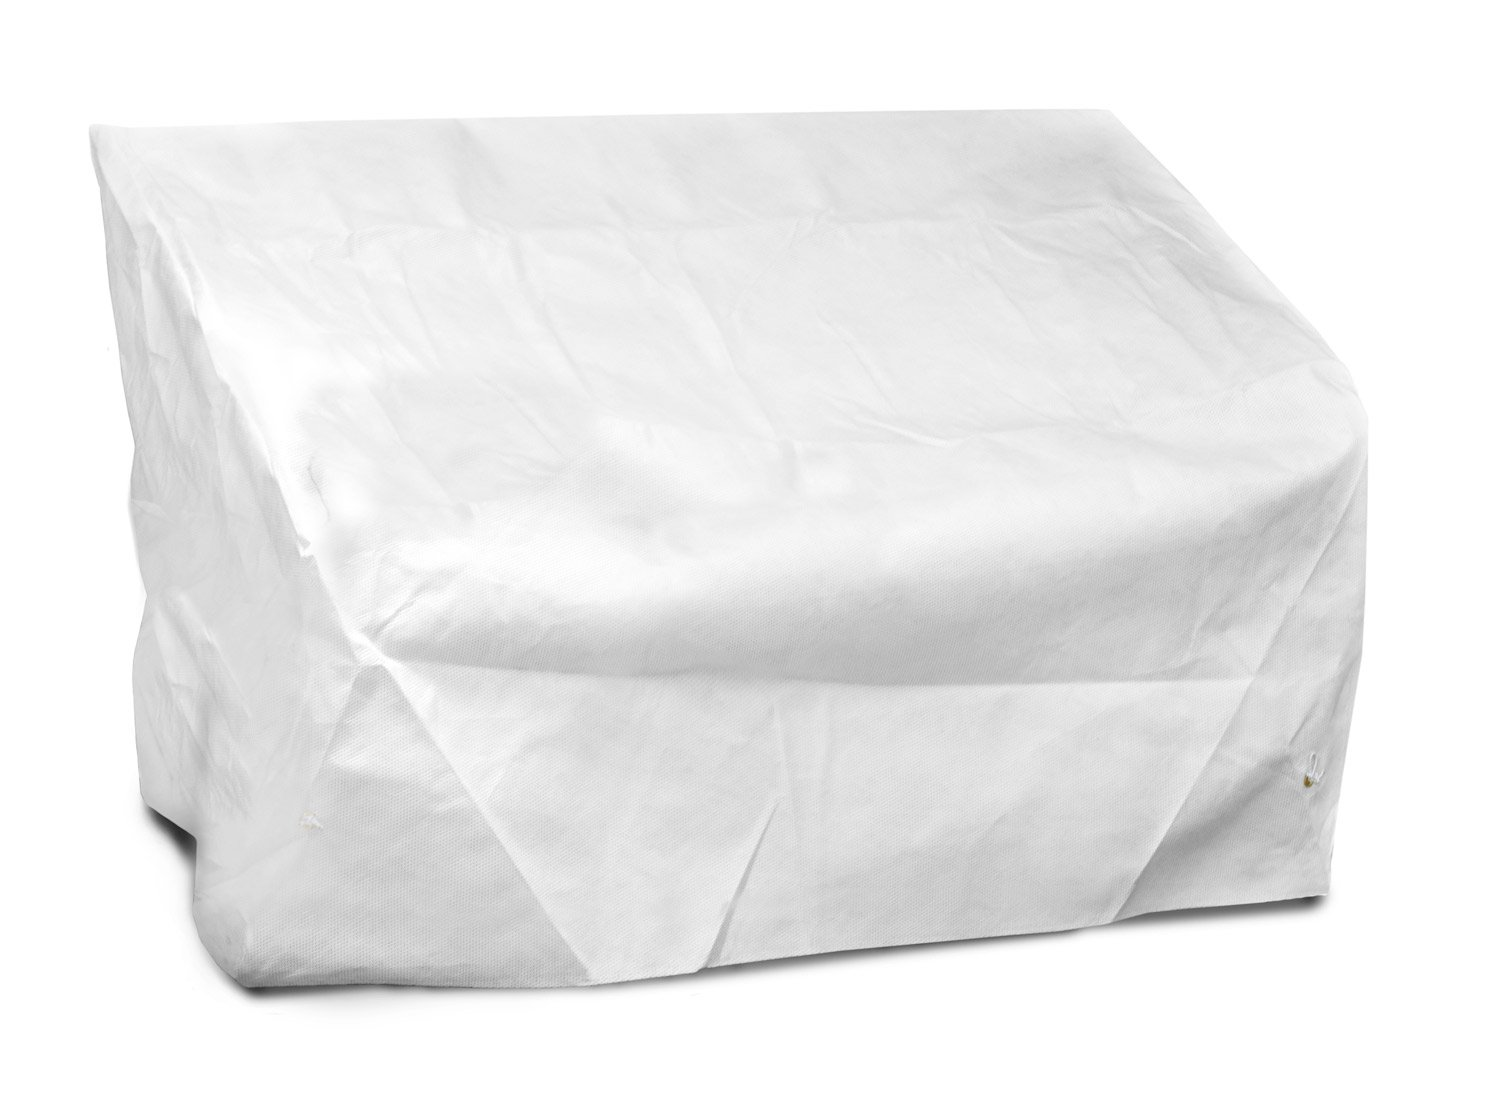 KoverRoos DuPont Tyvek 22350 2-Seat/Loveseat Cover, 54-Inch Width by 38-Inch Diameter by 31-Inch Height, White